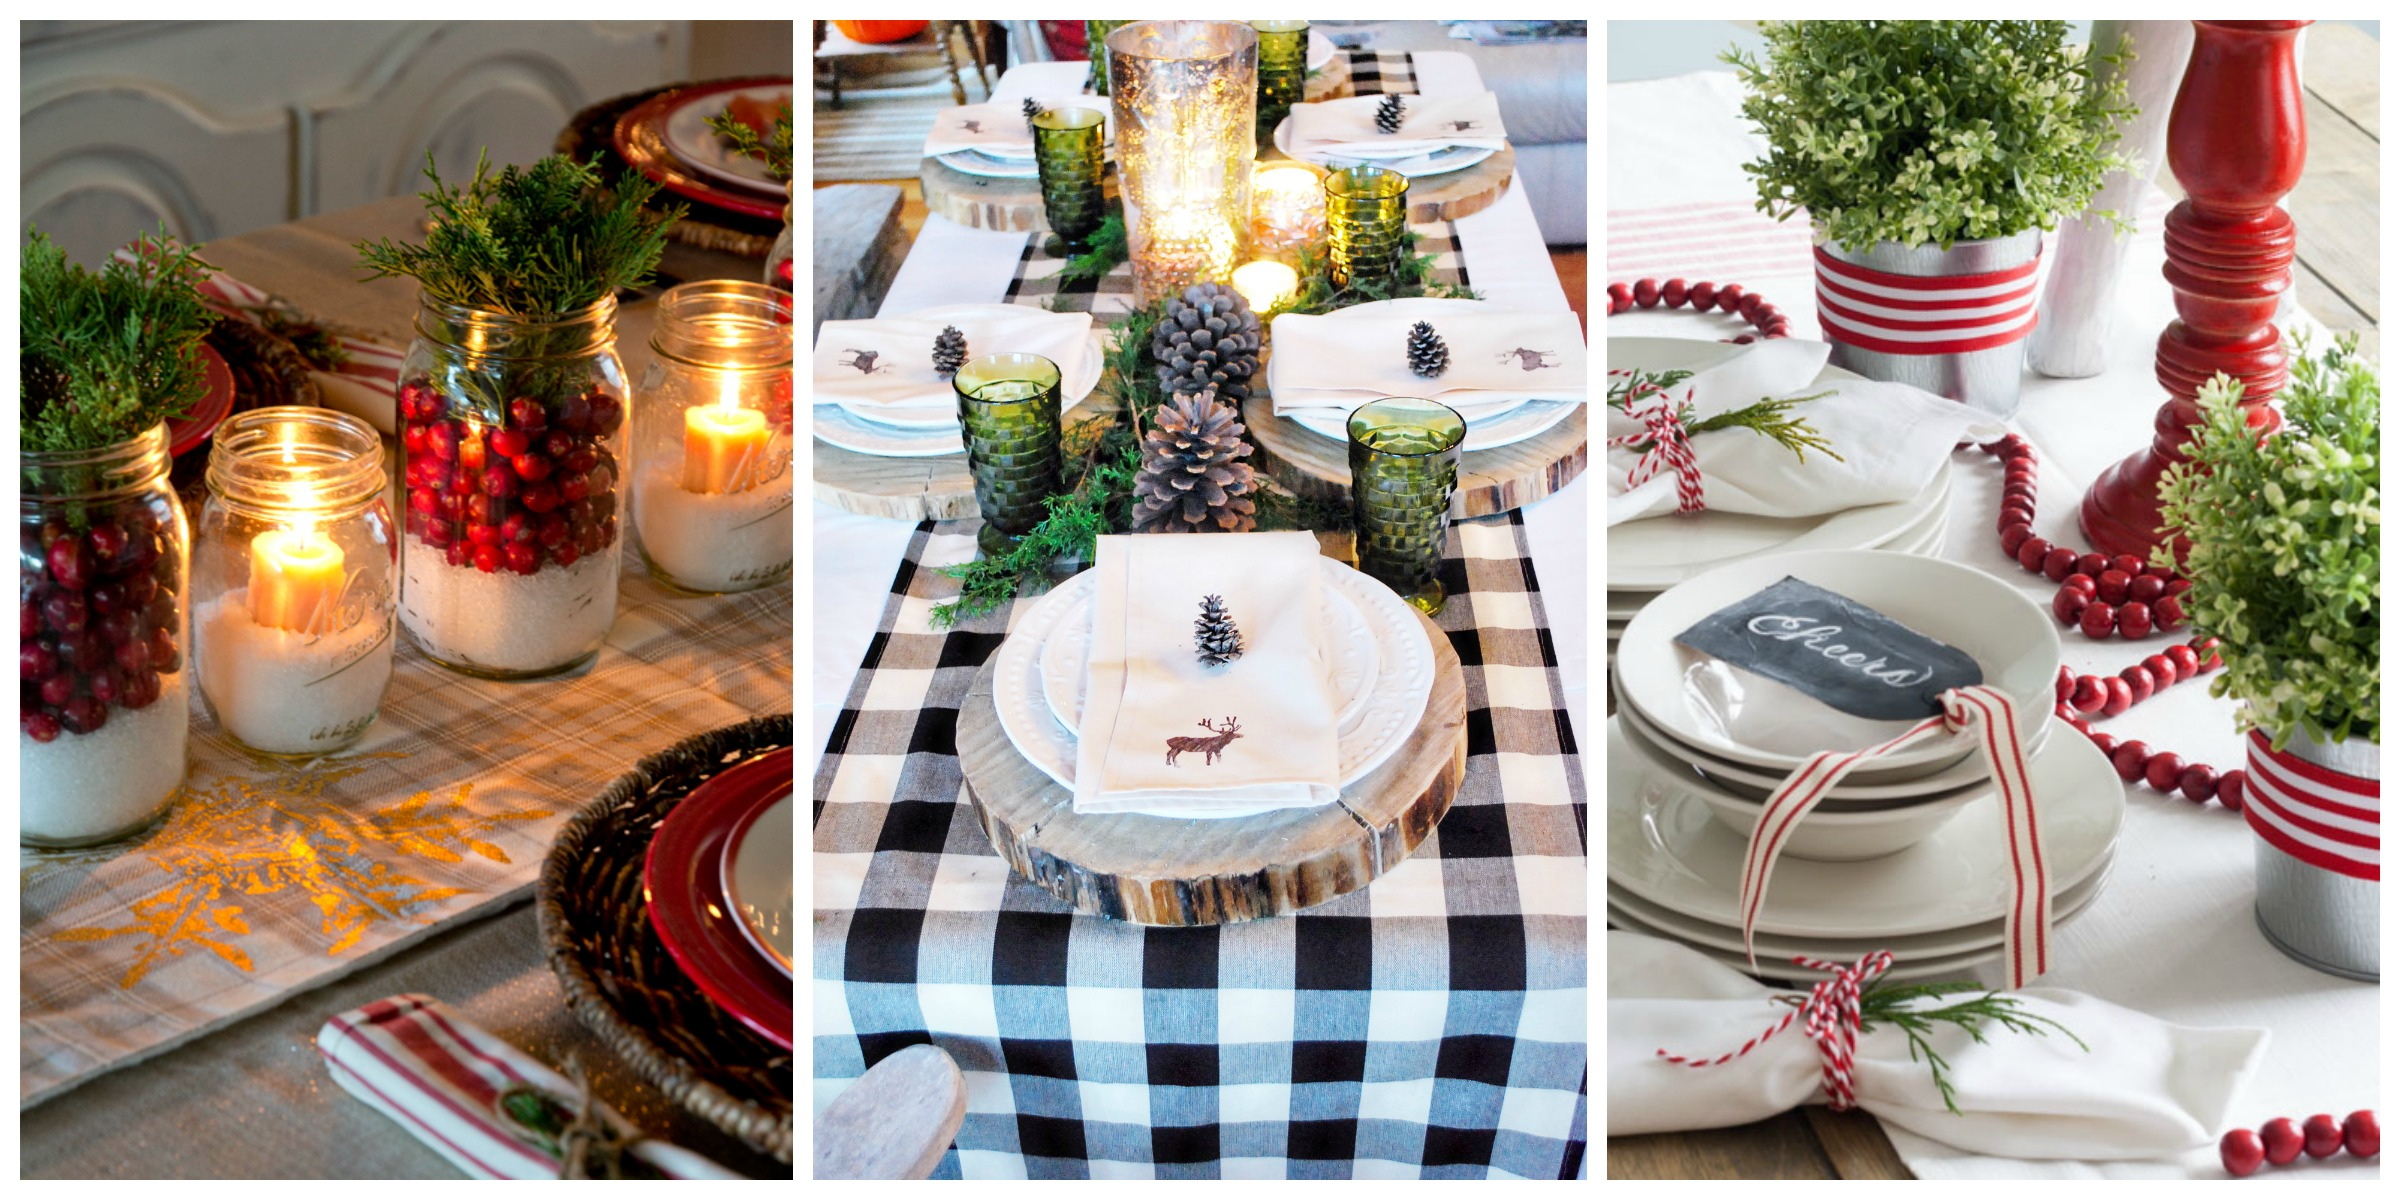 Christmas Tables Decorated 32 Christmas Table Decorations And Centerpieces Ideas For